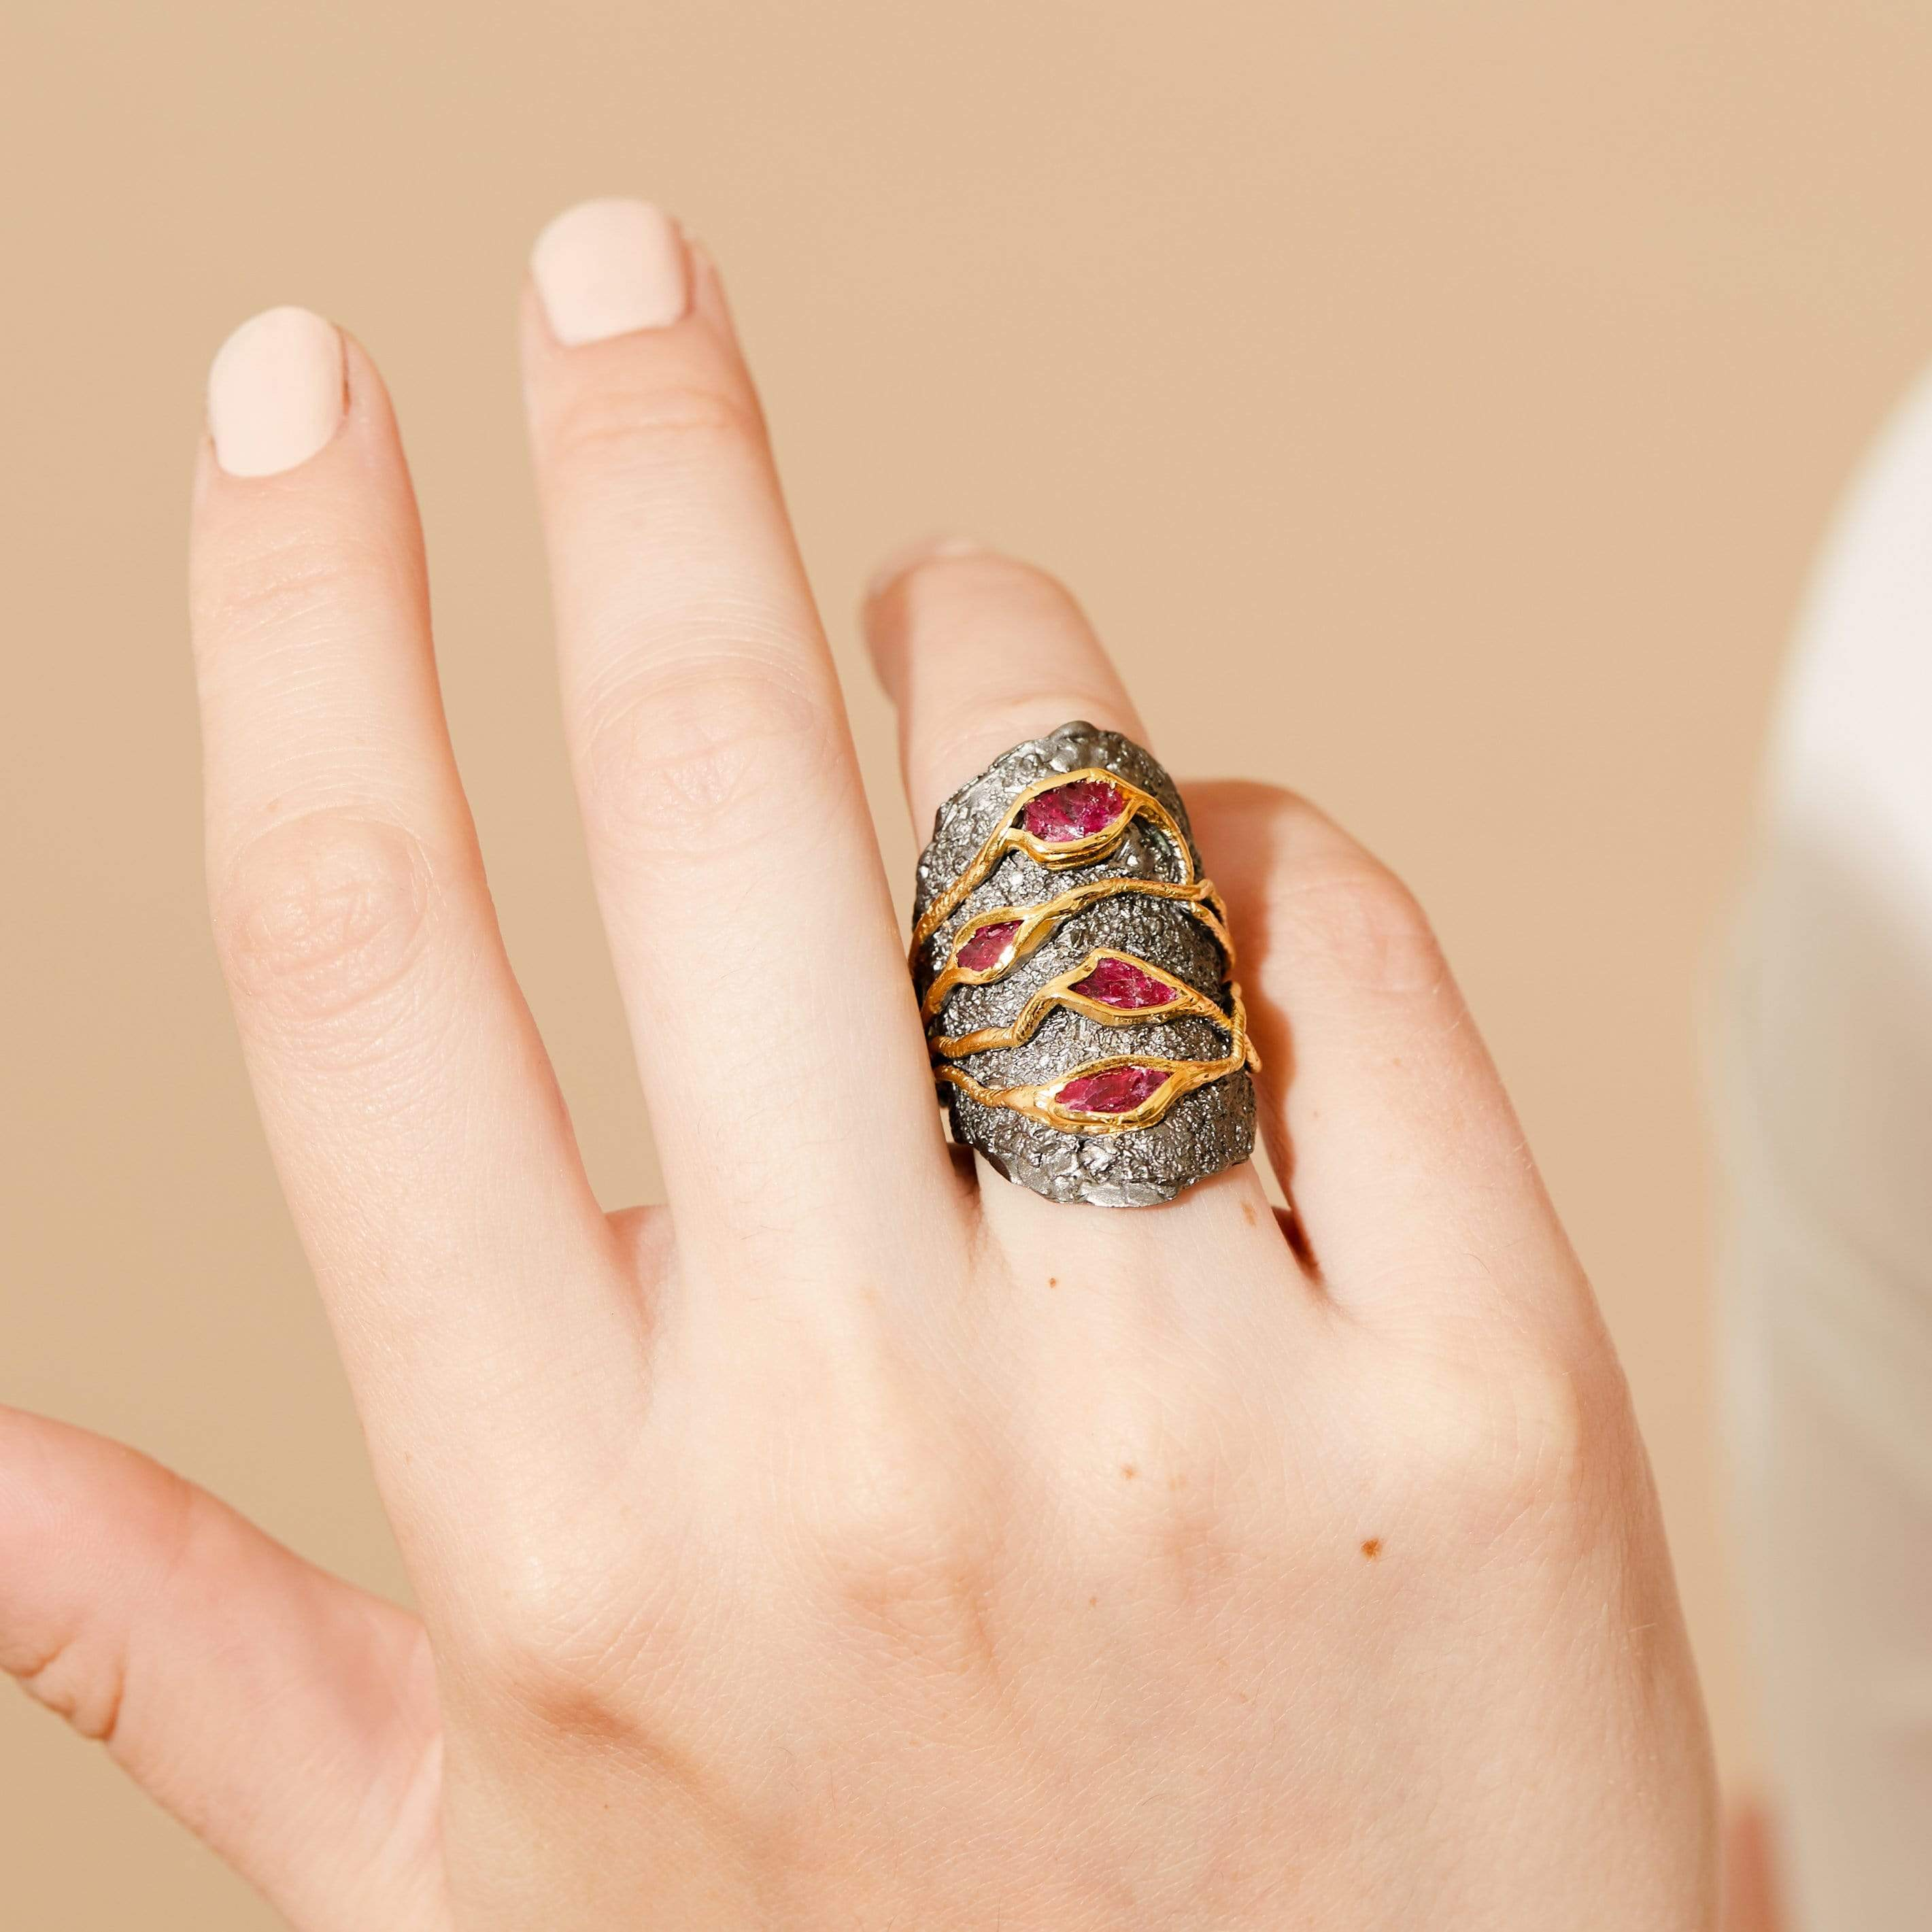 Edlyn Ring, Gold, gray, Handmade, Rhodium, Ruby, spo-disabled, StoneColor:PinkRuby, Style:Everyday, Type:StoneCandyWired Ring